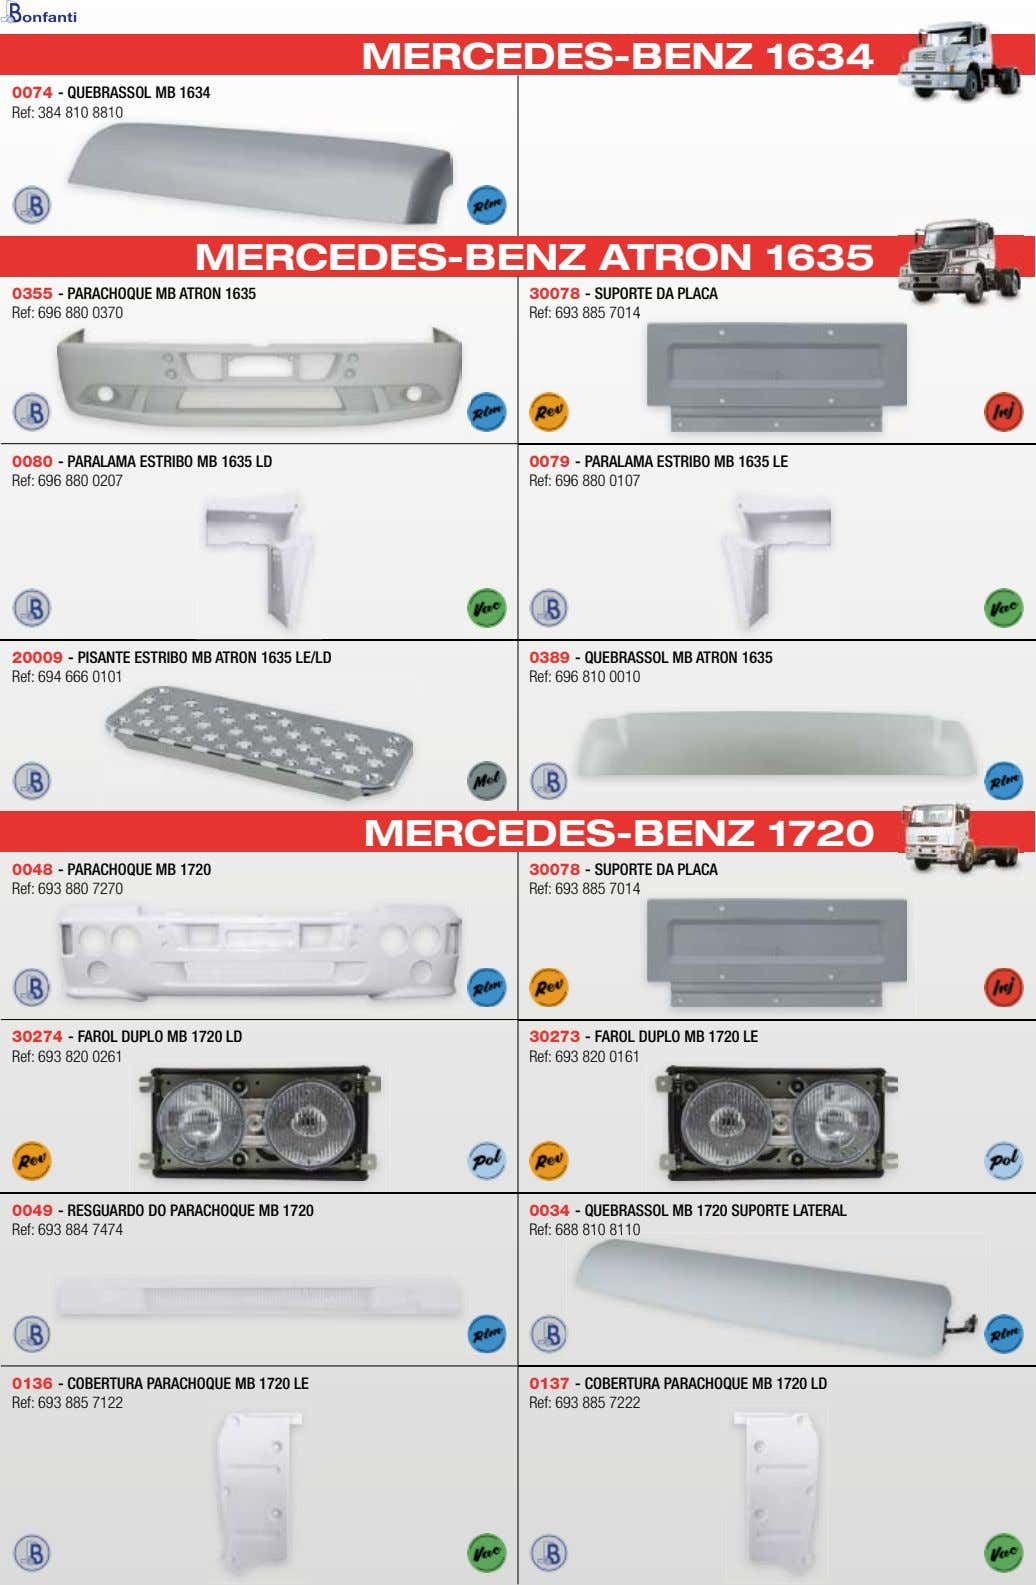 MERCEDES-BENZ 1634 0074 - QUEBRASSOL MB 1634 Ref: 384 810 8810 MERCEDES-BENZ ATRON 1635 0355